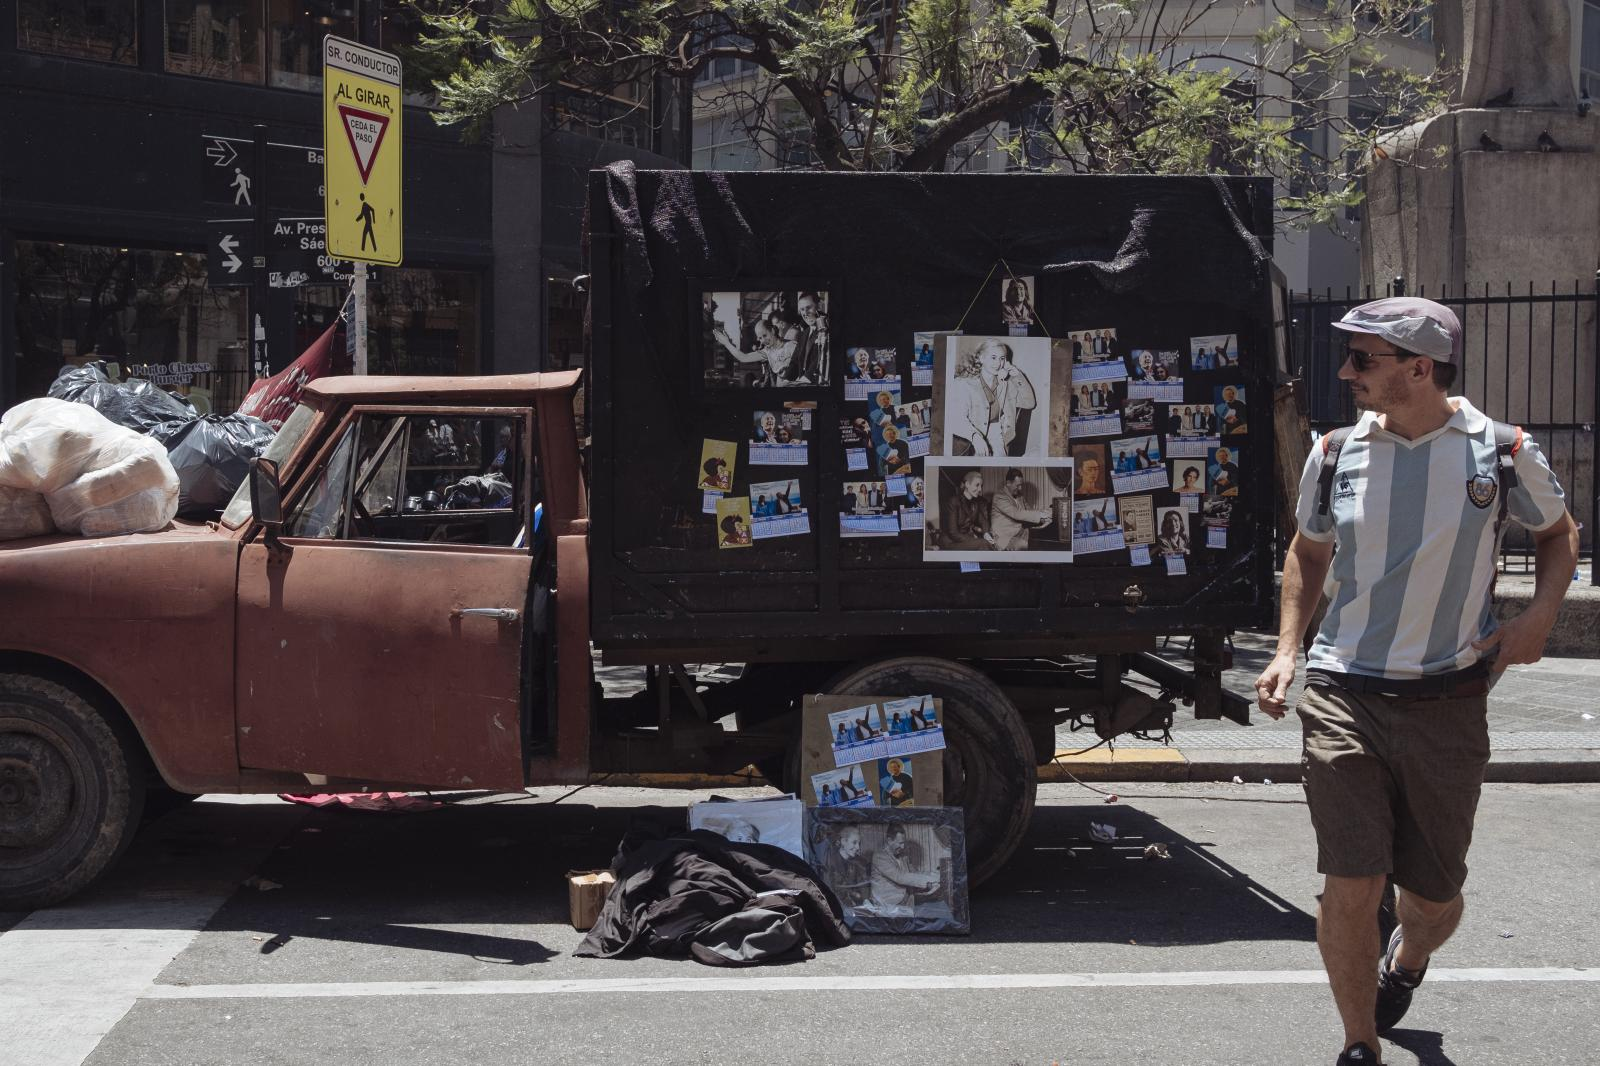 A supporter of Alberto Fernandez with an Argentine football team t-shirt walks in front of a truck with Juan Domingo and Eva Perón's photos on the presidencial swears-in day, Buenos Aires, Argentina, on Tuesday, Dec. 10, 2019.